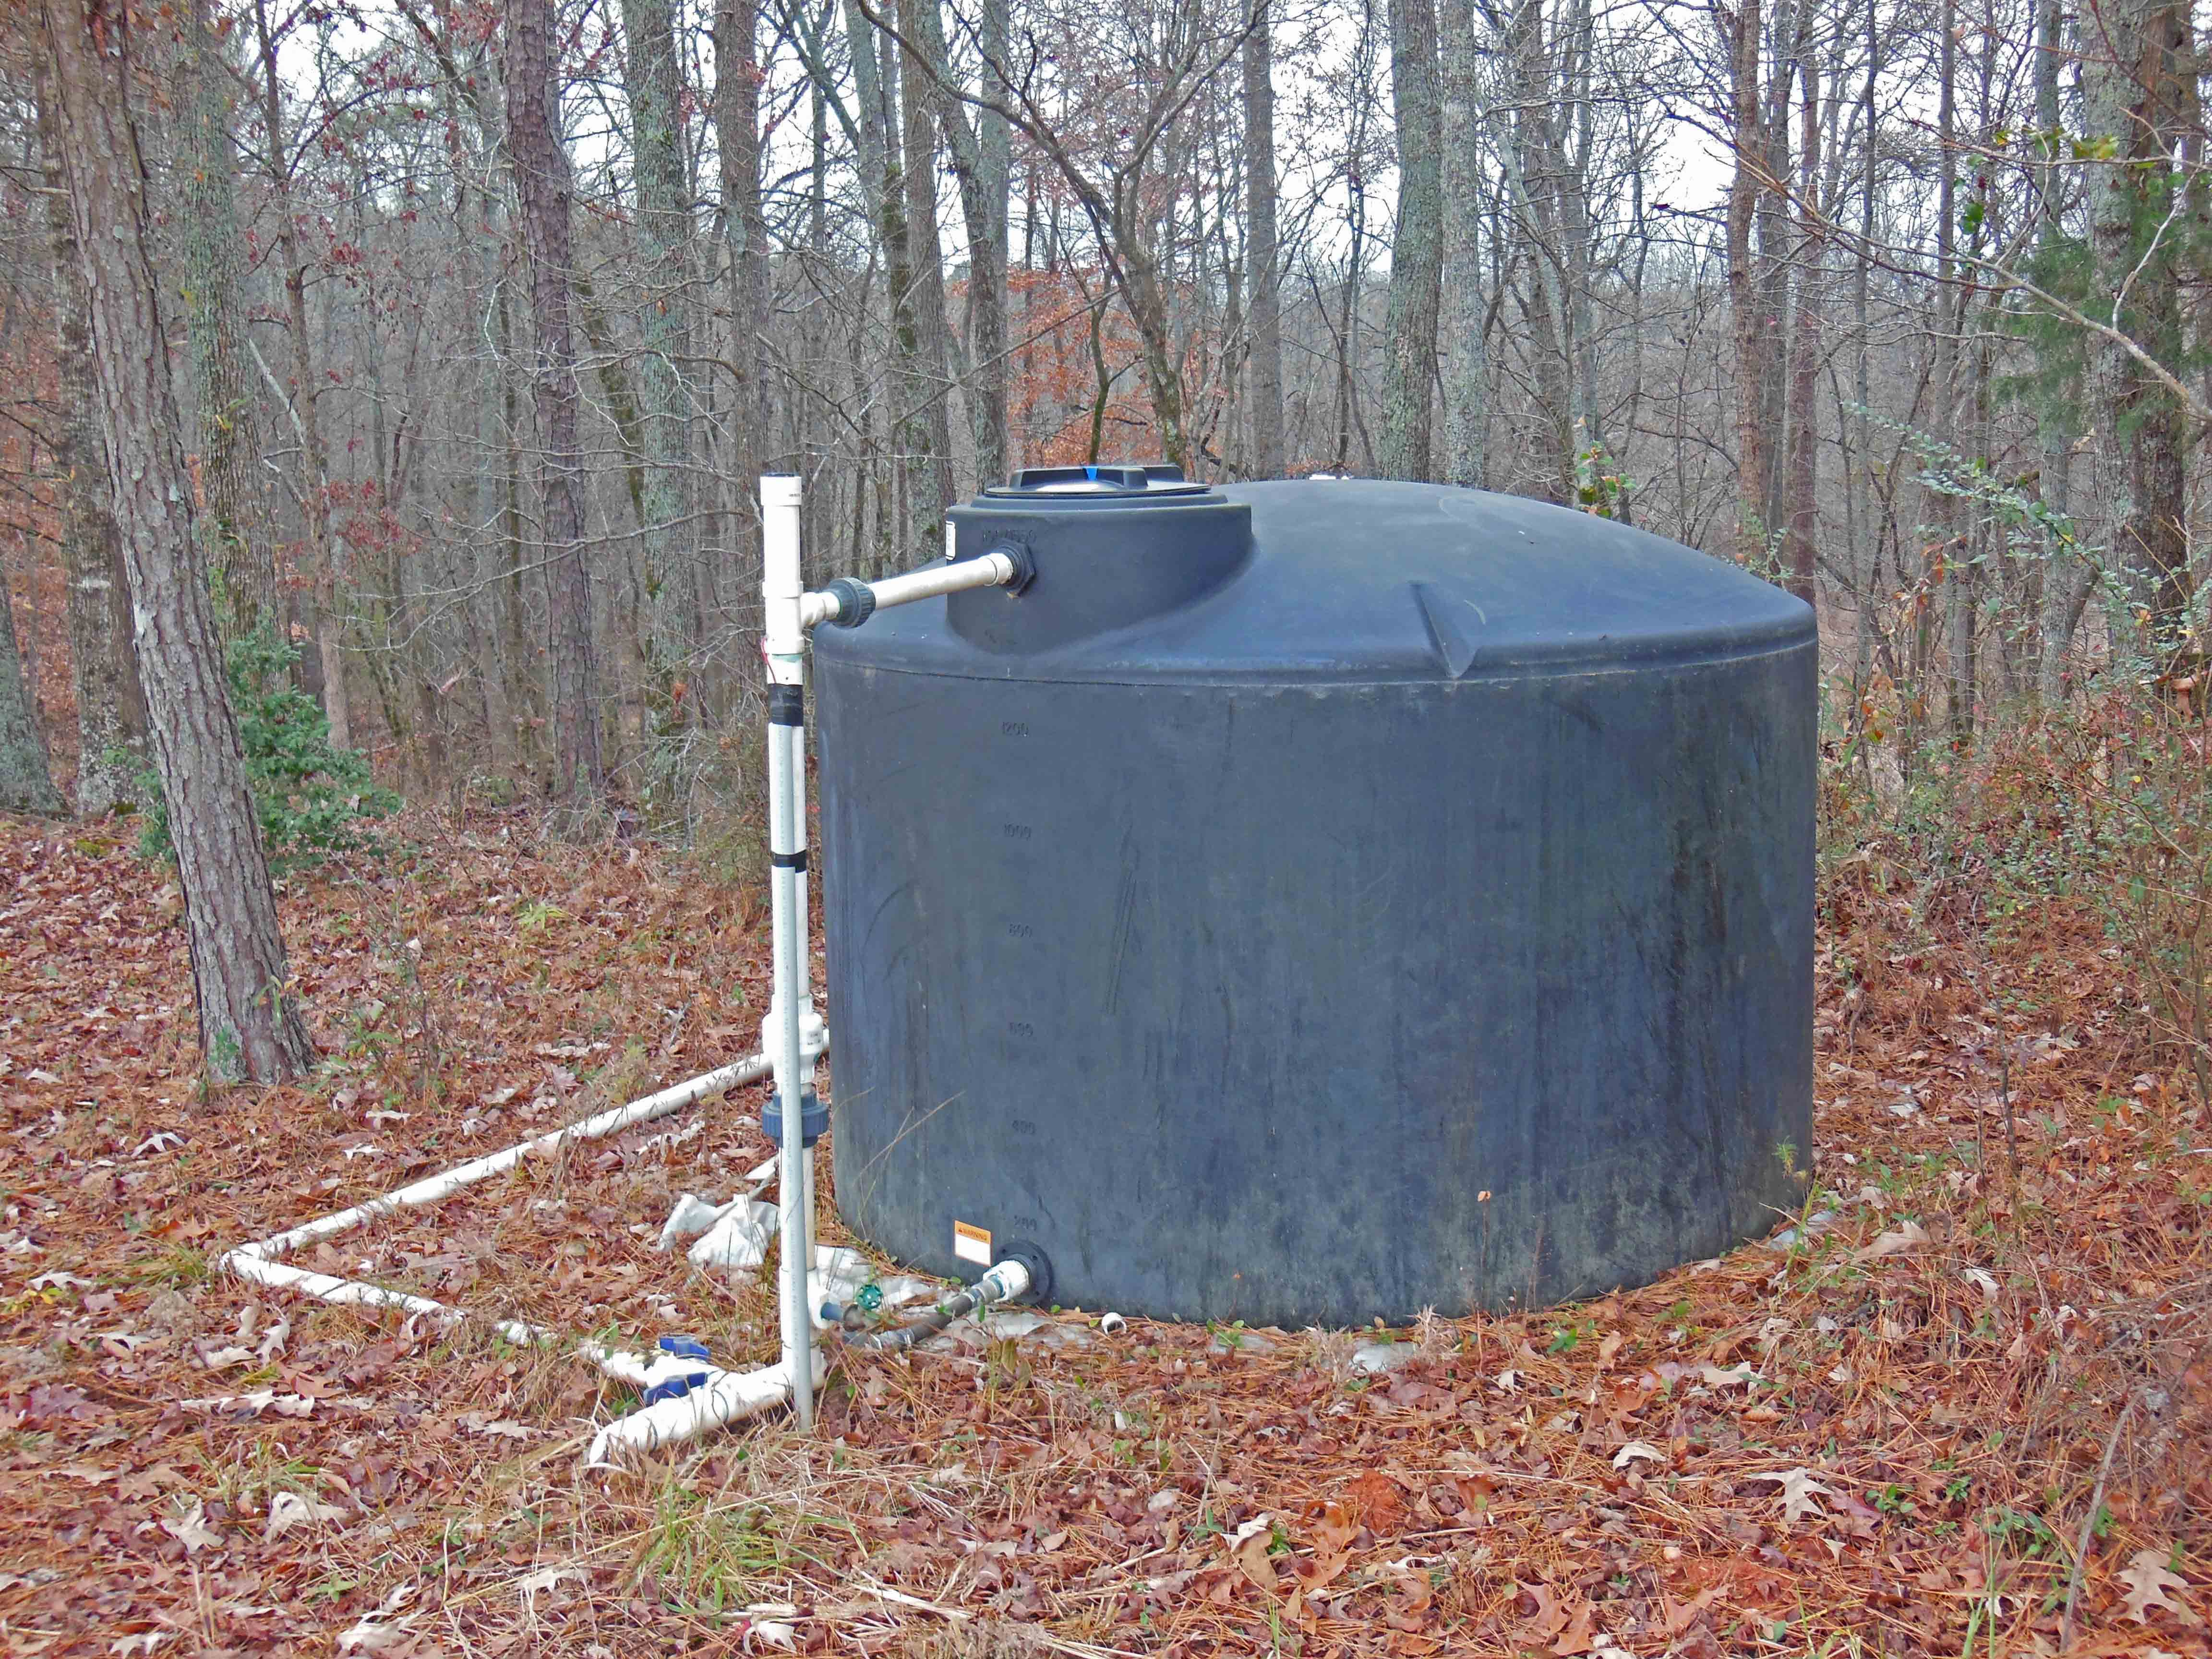 Gary Hawkins, the UGA College of Agriculture and Environmental Sciences Crop and Soil Science researcher, installed solar-powered well for cattle at a farm in Madison County. Hawkins designed the system to fill this 1,500 gallon tank with only about 5 five hours of sunlight.